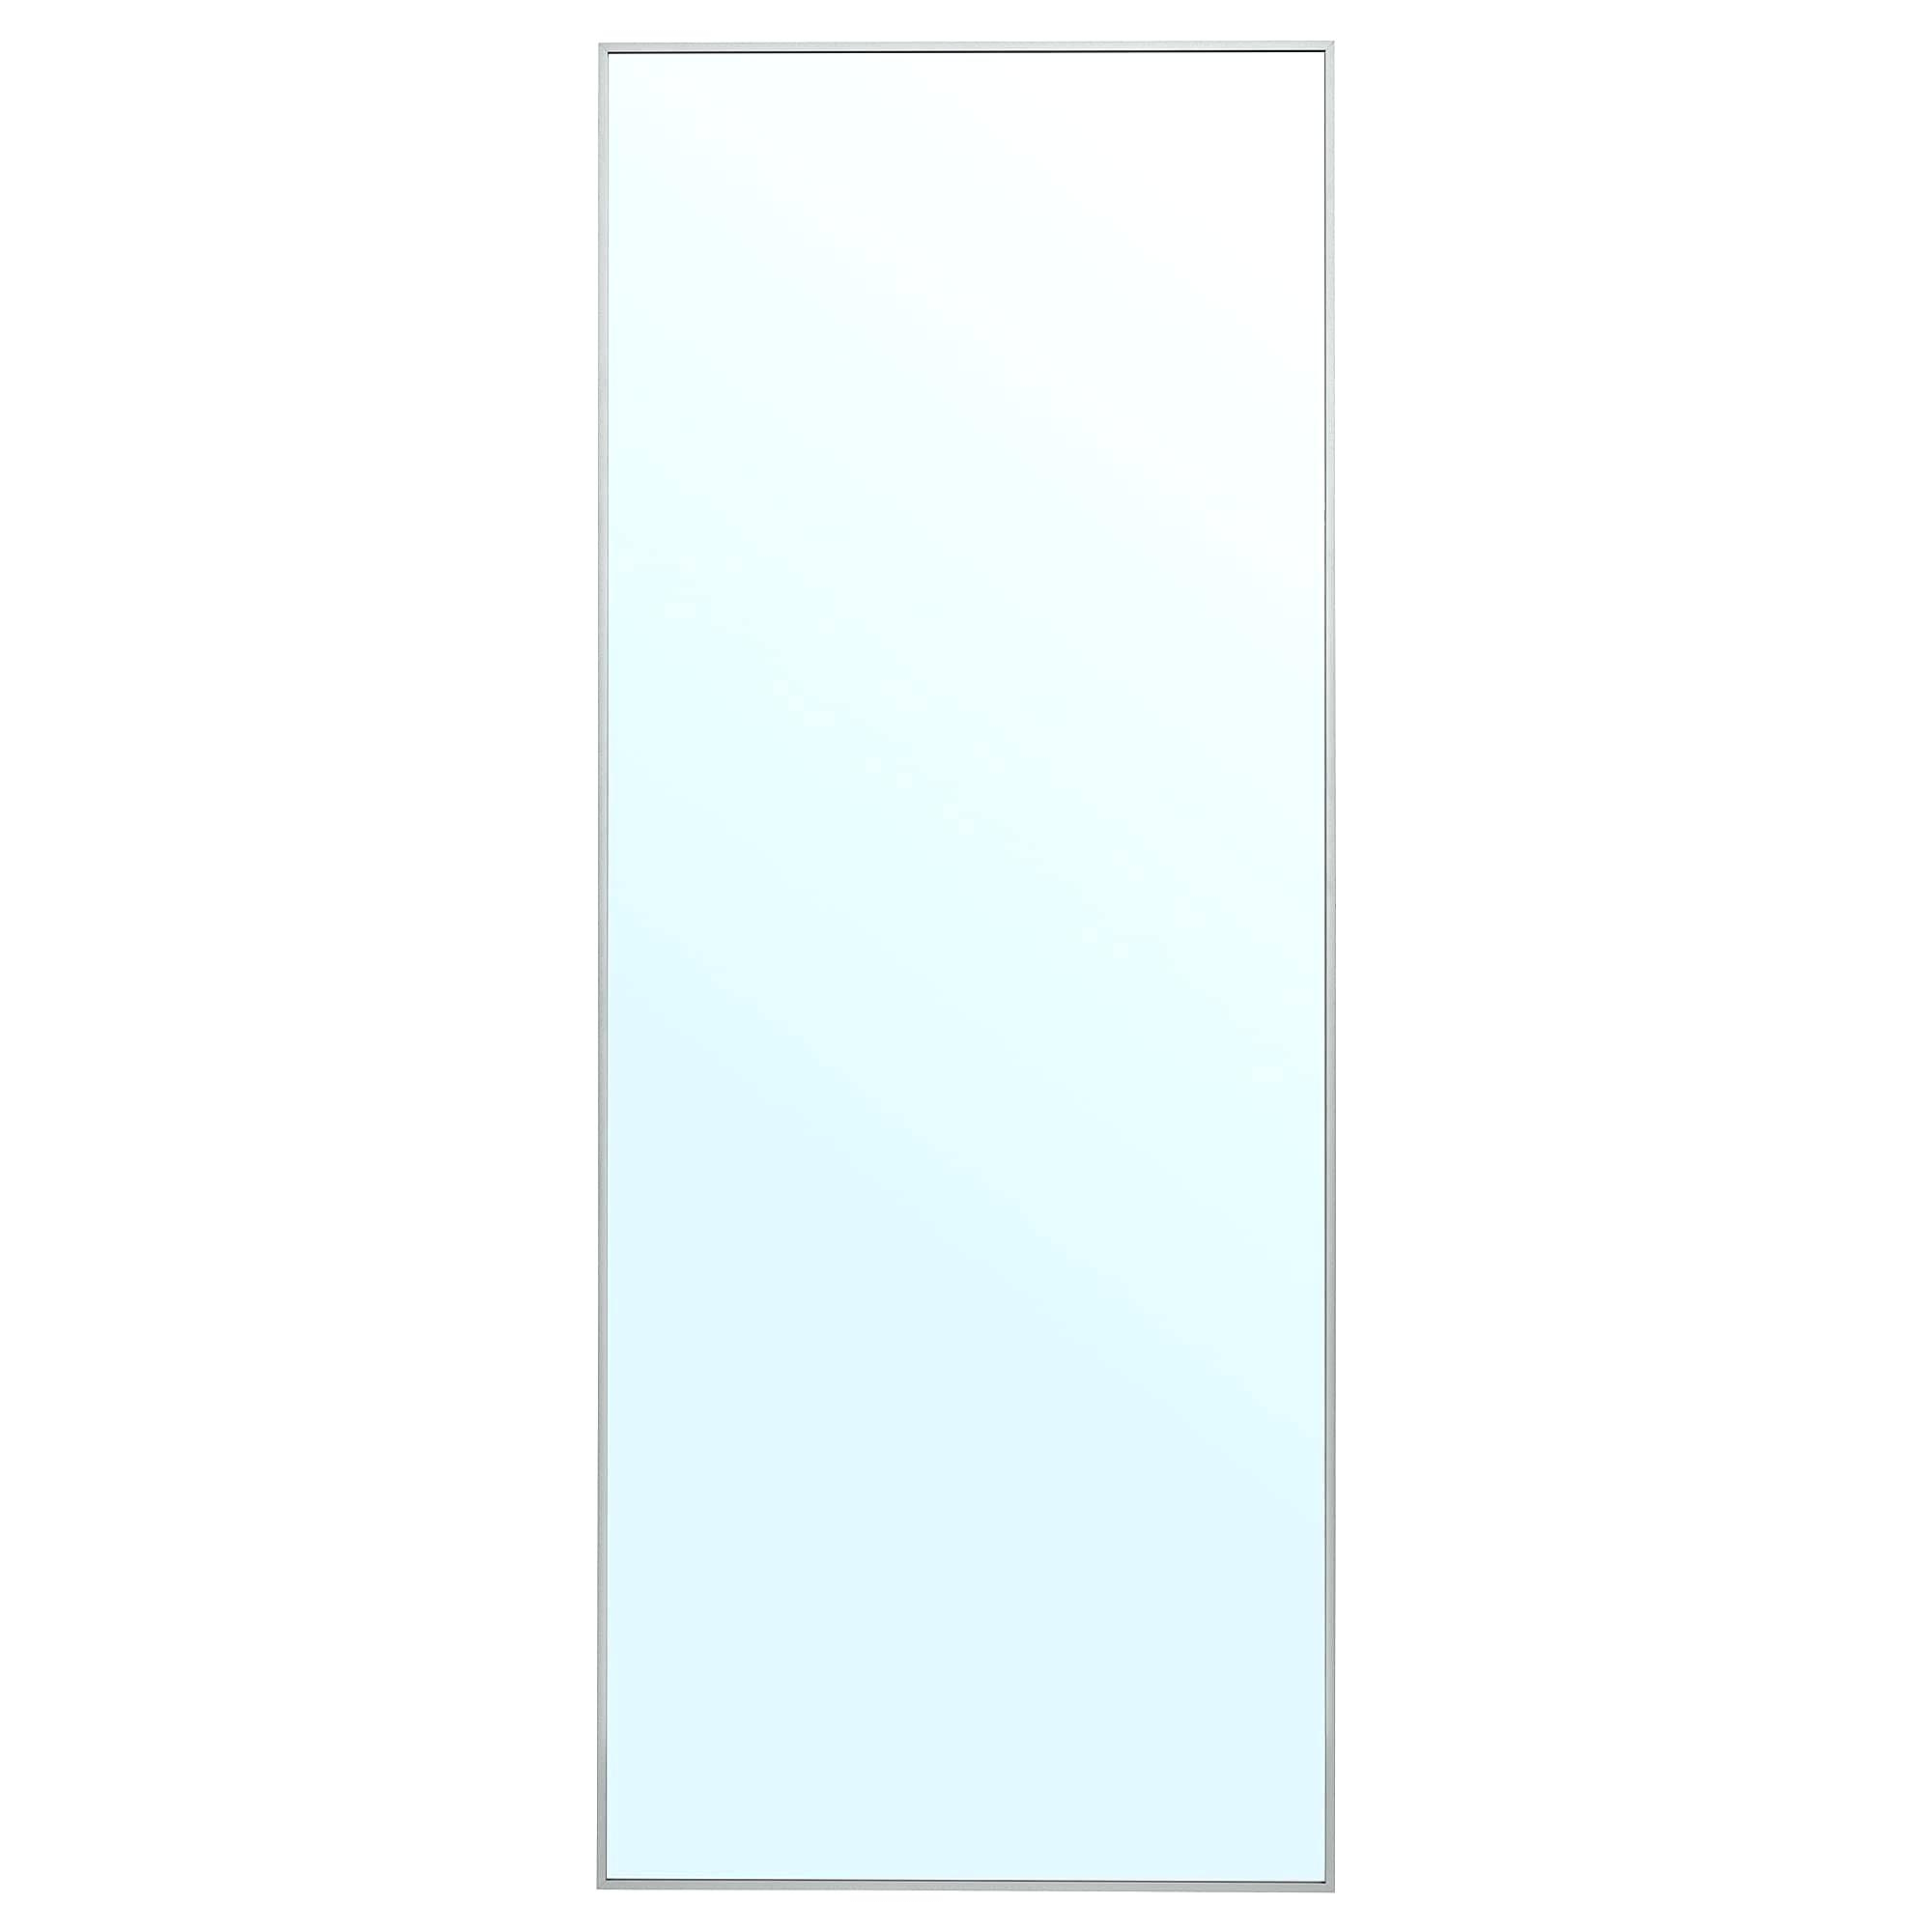 Large Wall Mirrors Ikea For Most Up To Date Wall Mirror Ikea – Laurenfraser.co (Gallery 7 of 20)